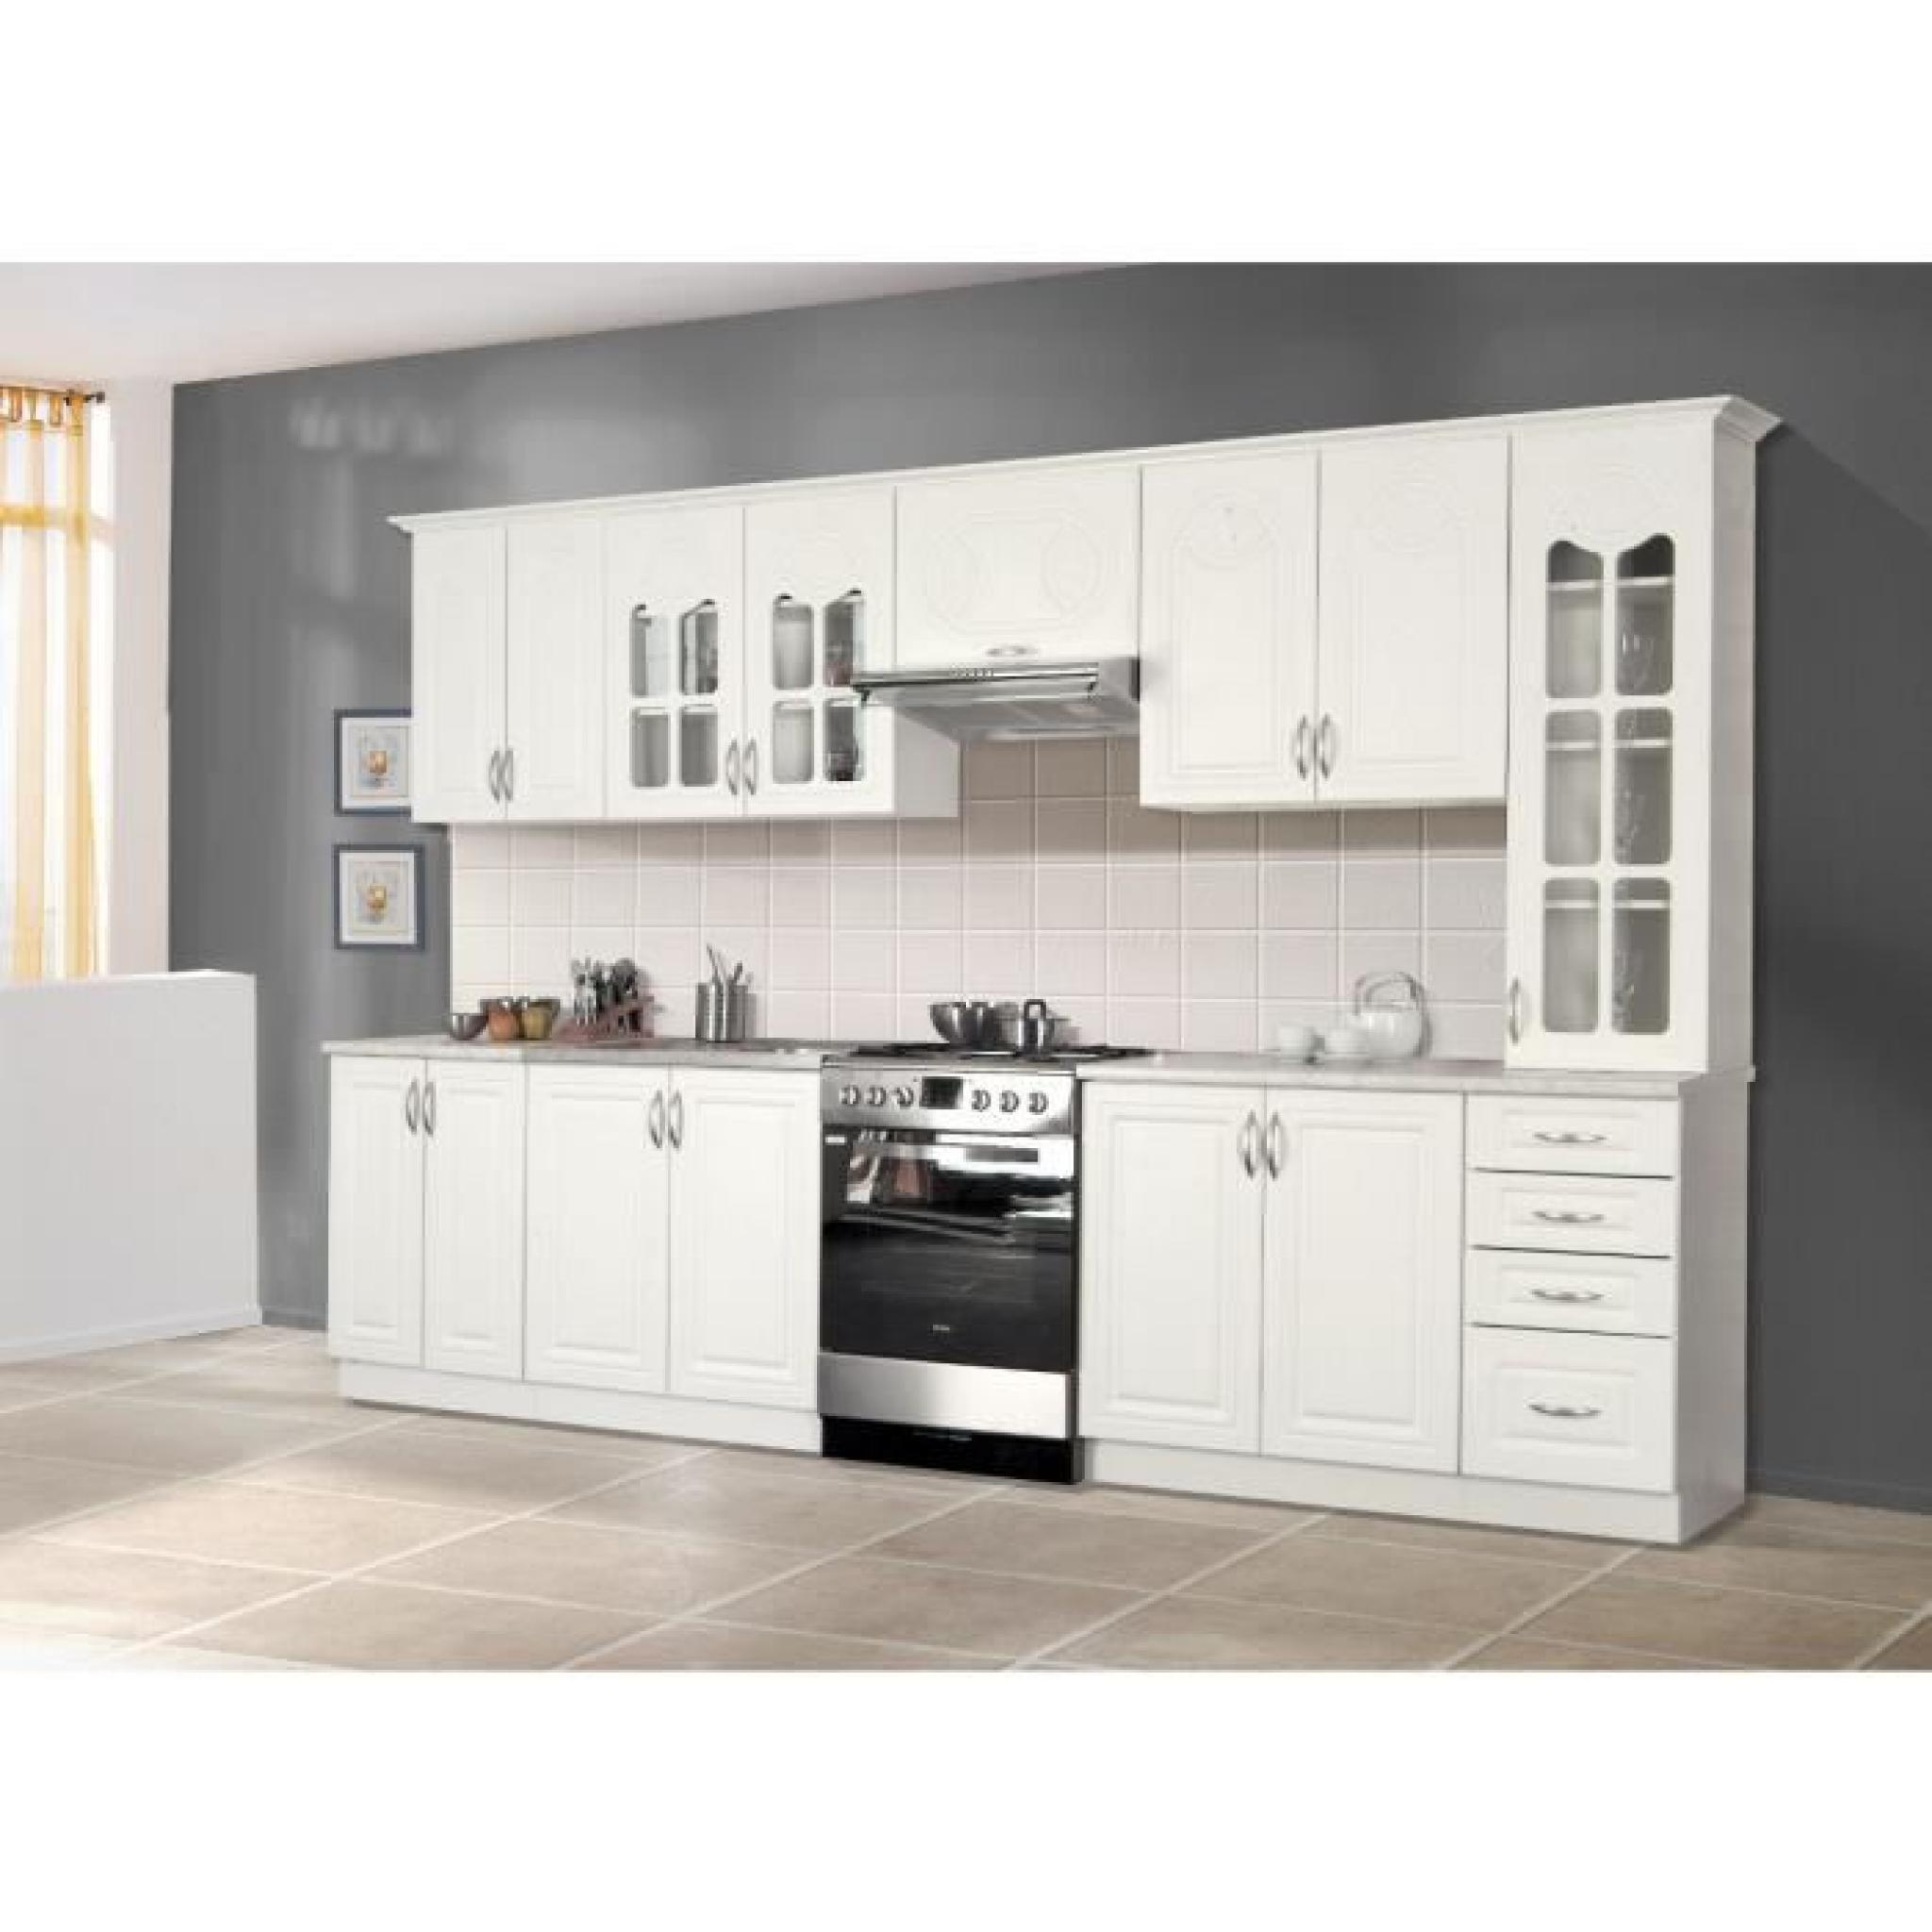 rosa cuisine compl te 3m20 blanc achat vente cuisine. Black Bedroom Furniture Sets. Home Design Ideas